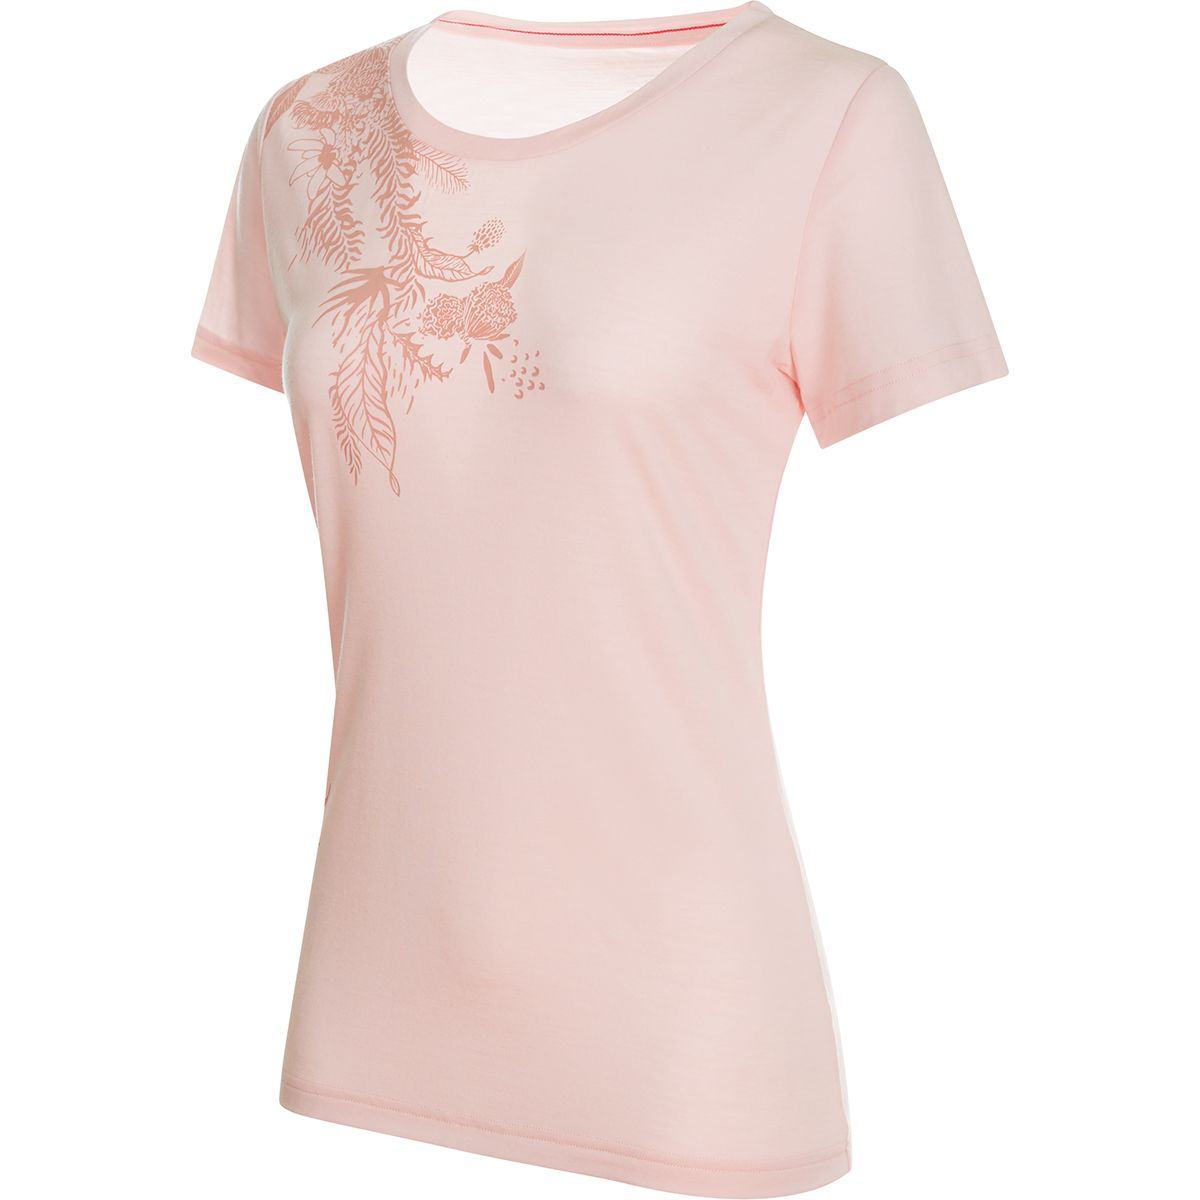 Mammut Damen Alnasca T-Shirt (Größe S, Orange) | T-Shirts Funktion > Damen